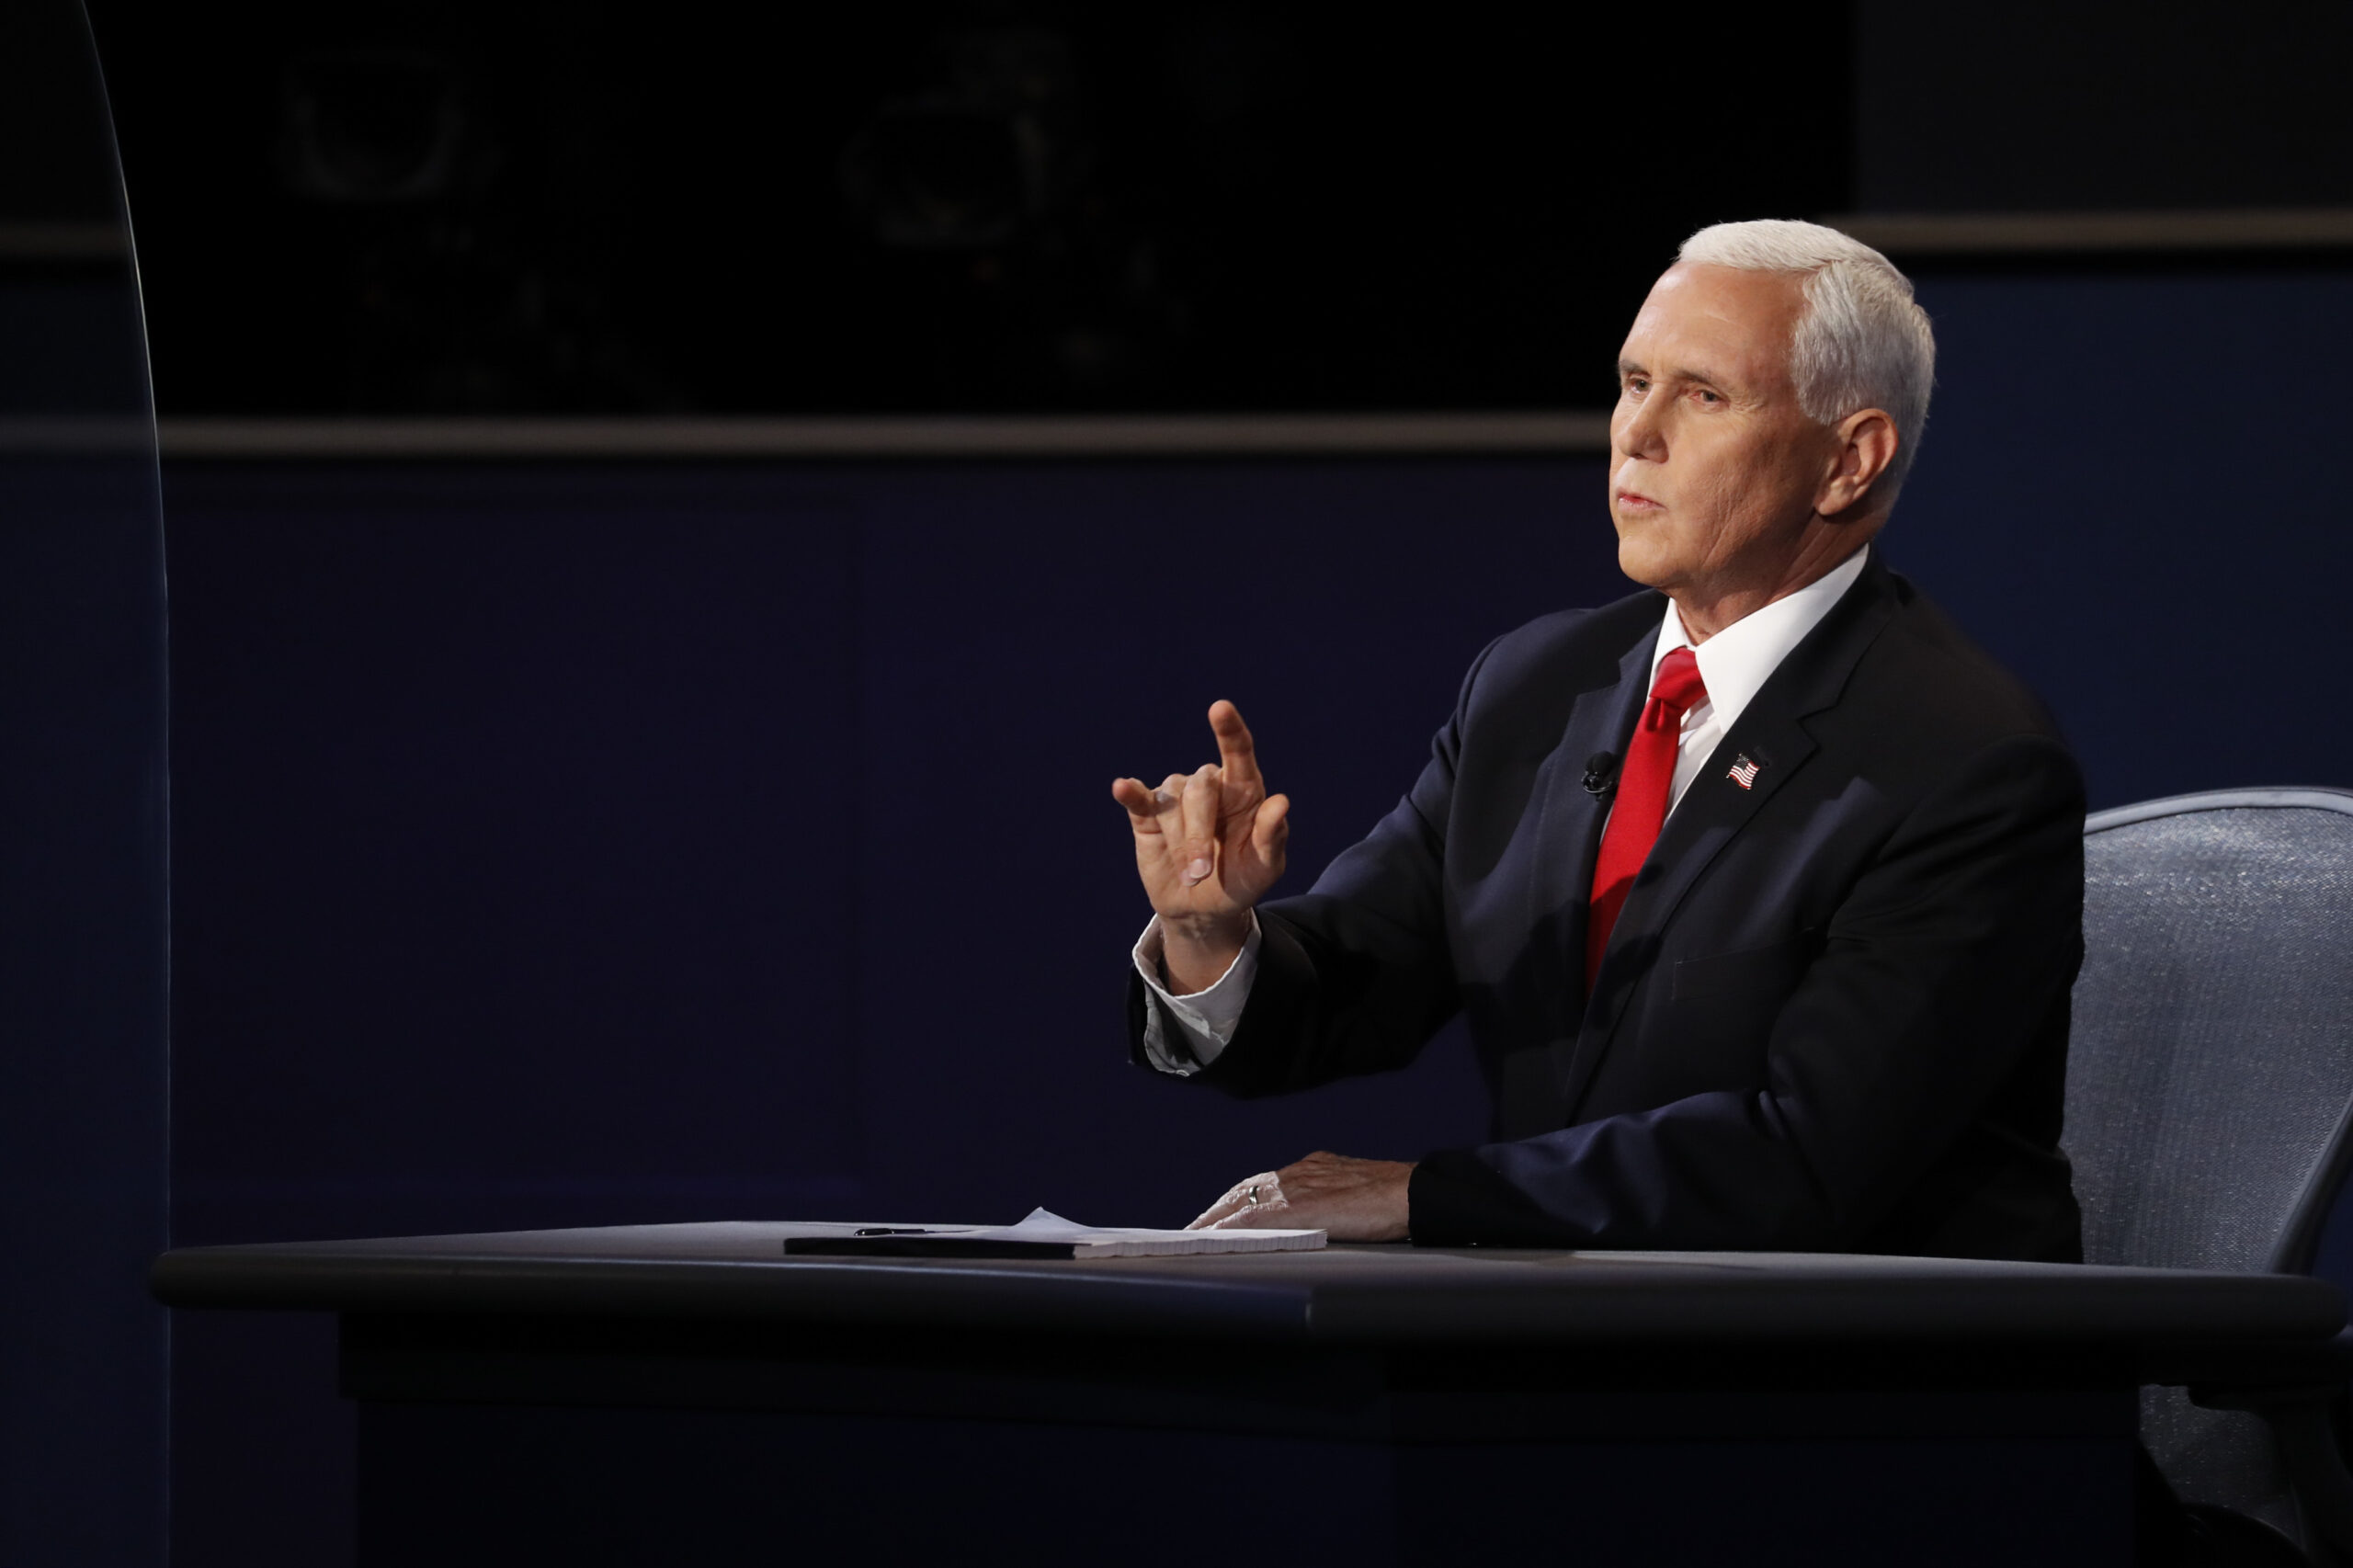 Mike Pence, head of the coronavirus task force, struggles to answer questions during debate